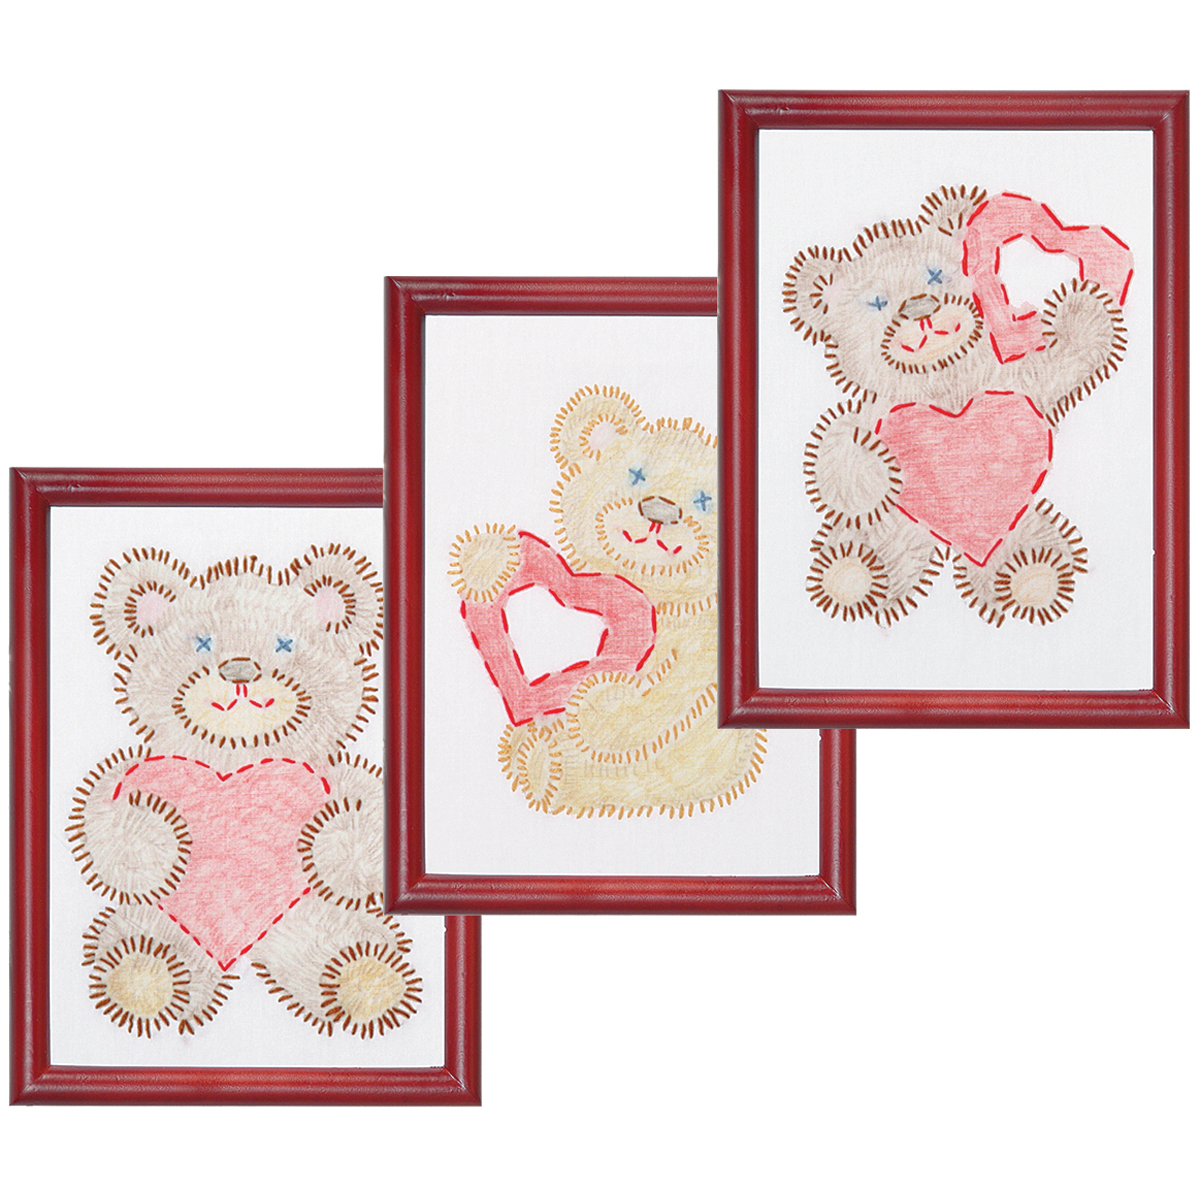 "Stamped Embroidery Kit Beginner Samplers 6""X8"" 3/Pkg-Fuzzy Bears"